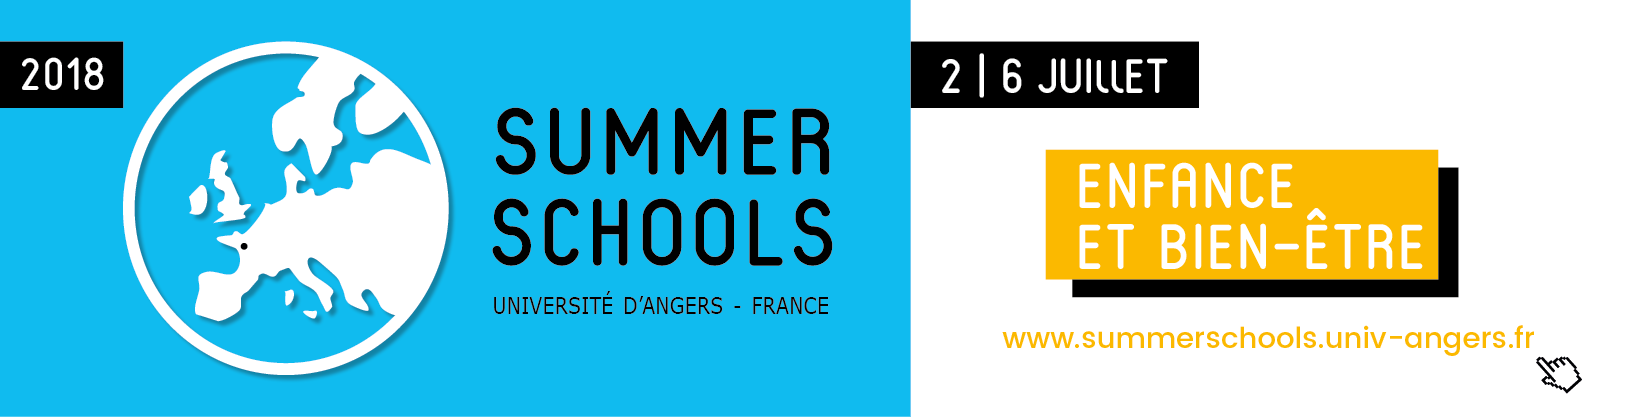 summer schools université angers